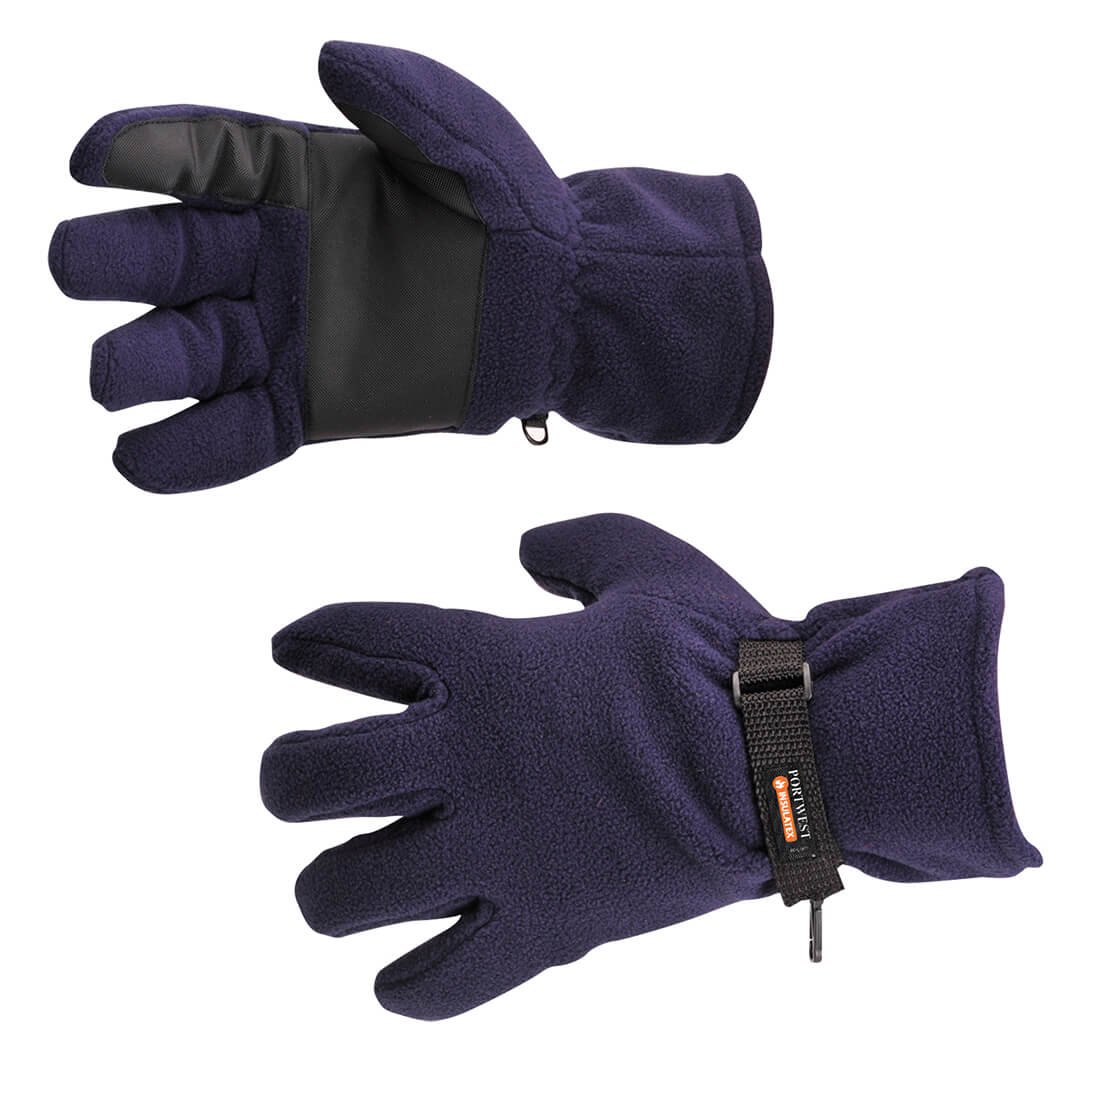 Image of Portwest Insulatex Lined Fleece Gripper Gloves Navy One Size